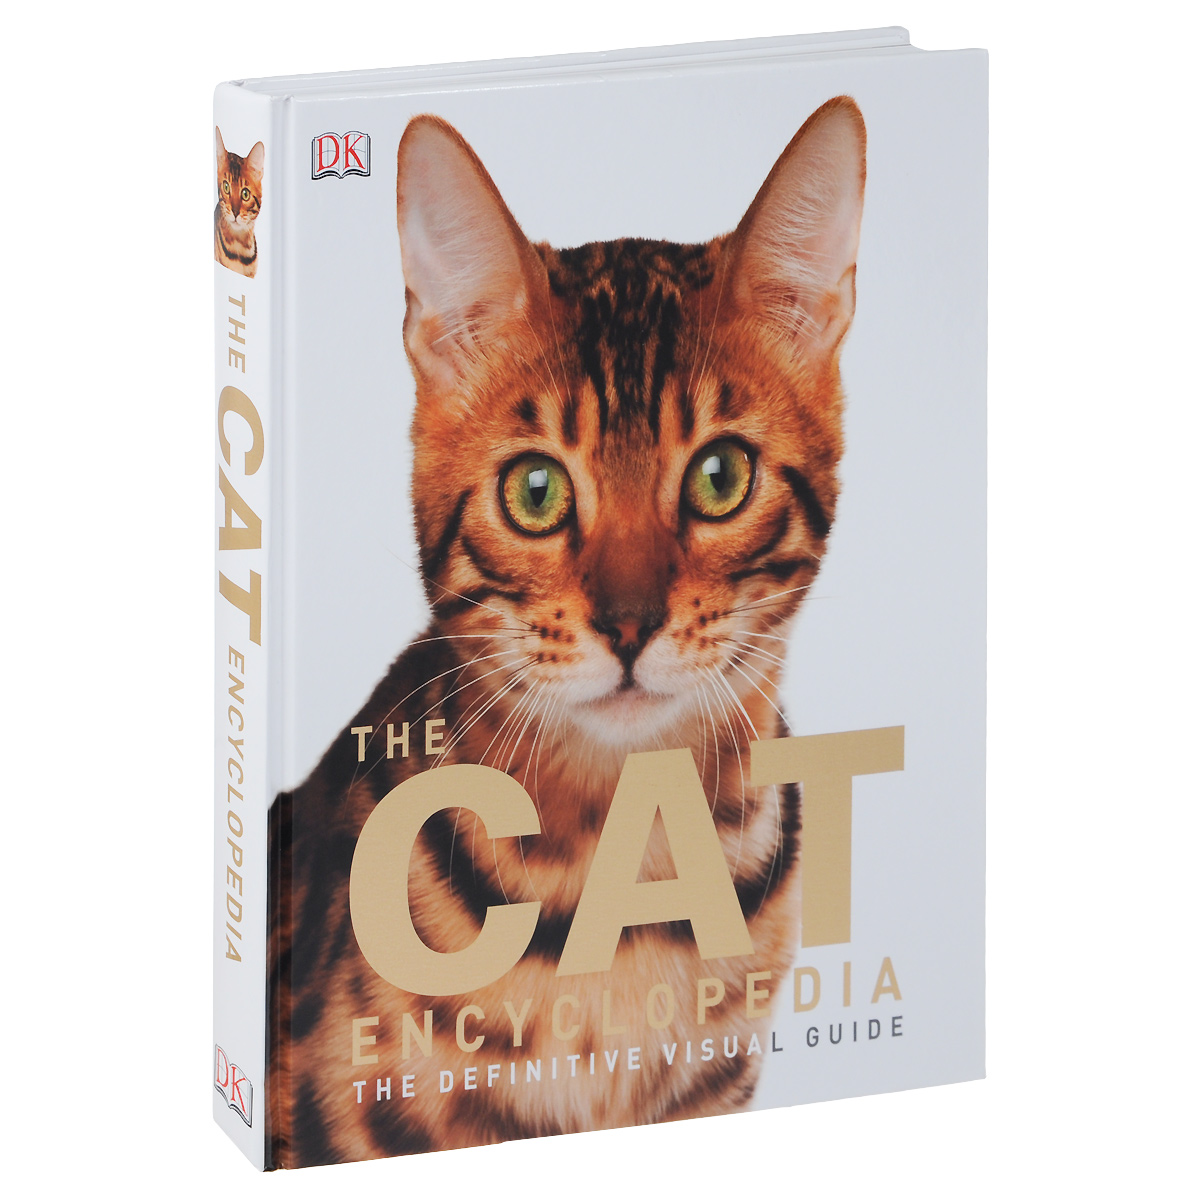 The Cat Encyclopedia kull v3 cat and the skull